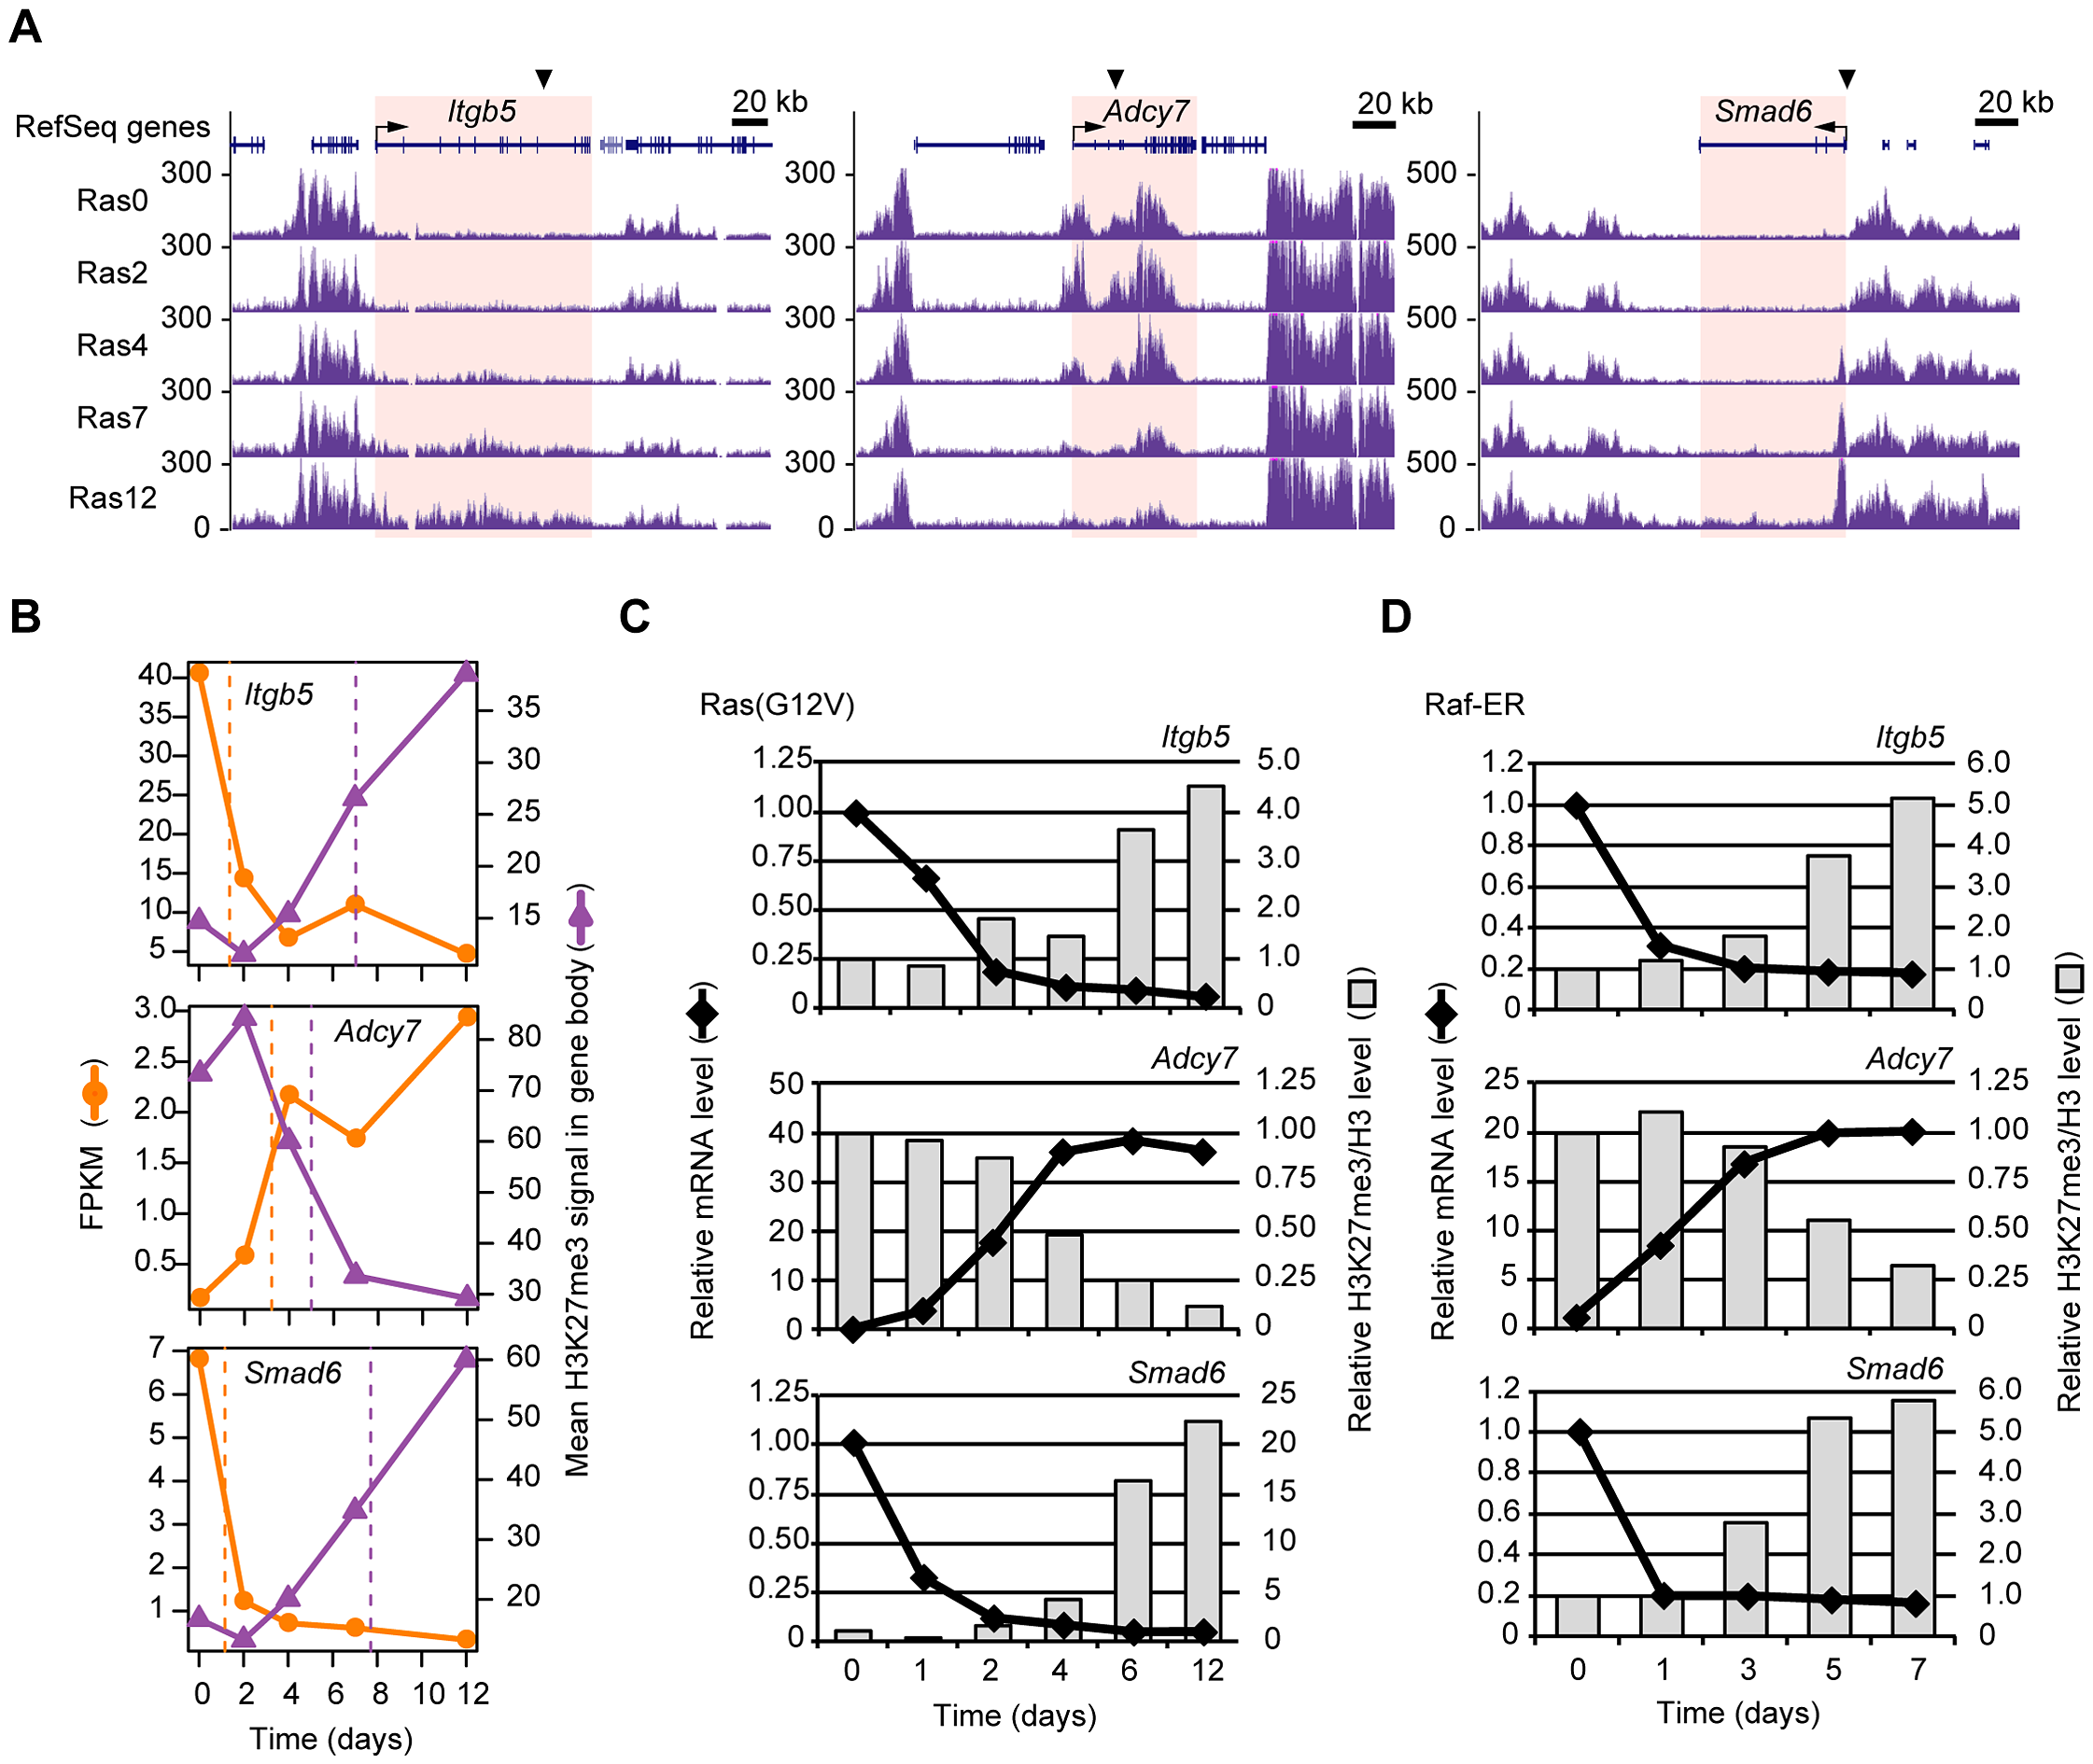 Validation of the temporal sequence of changes in gene expression and H3K27me3 level induced by Ras signaling.